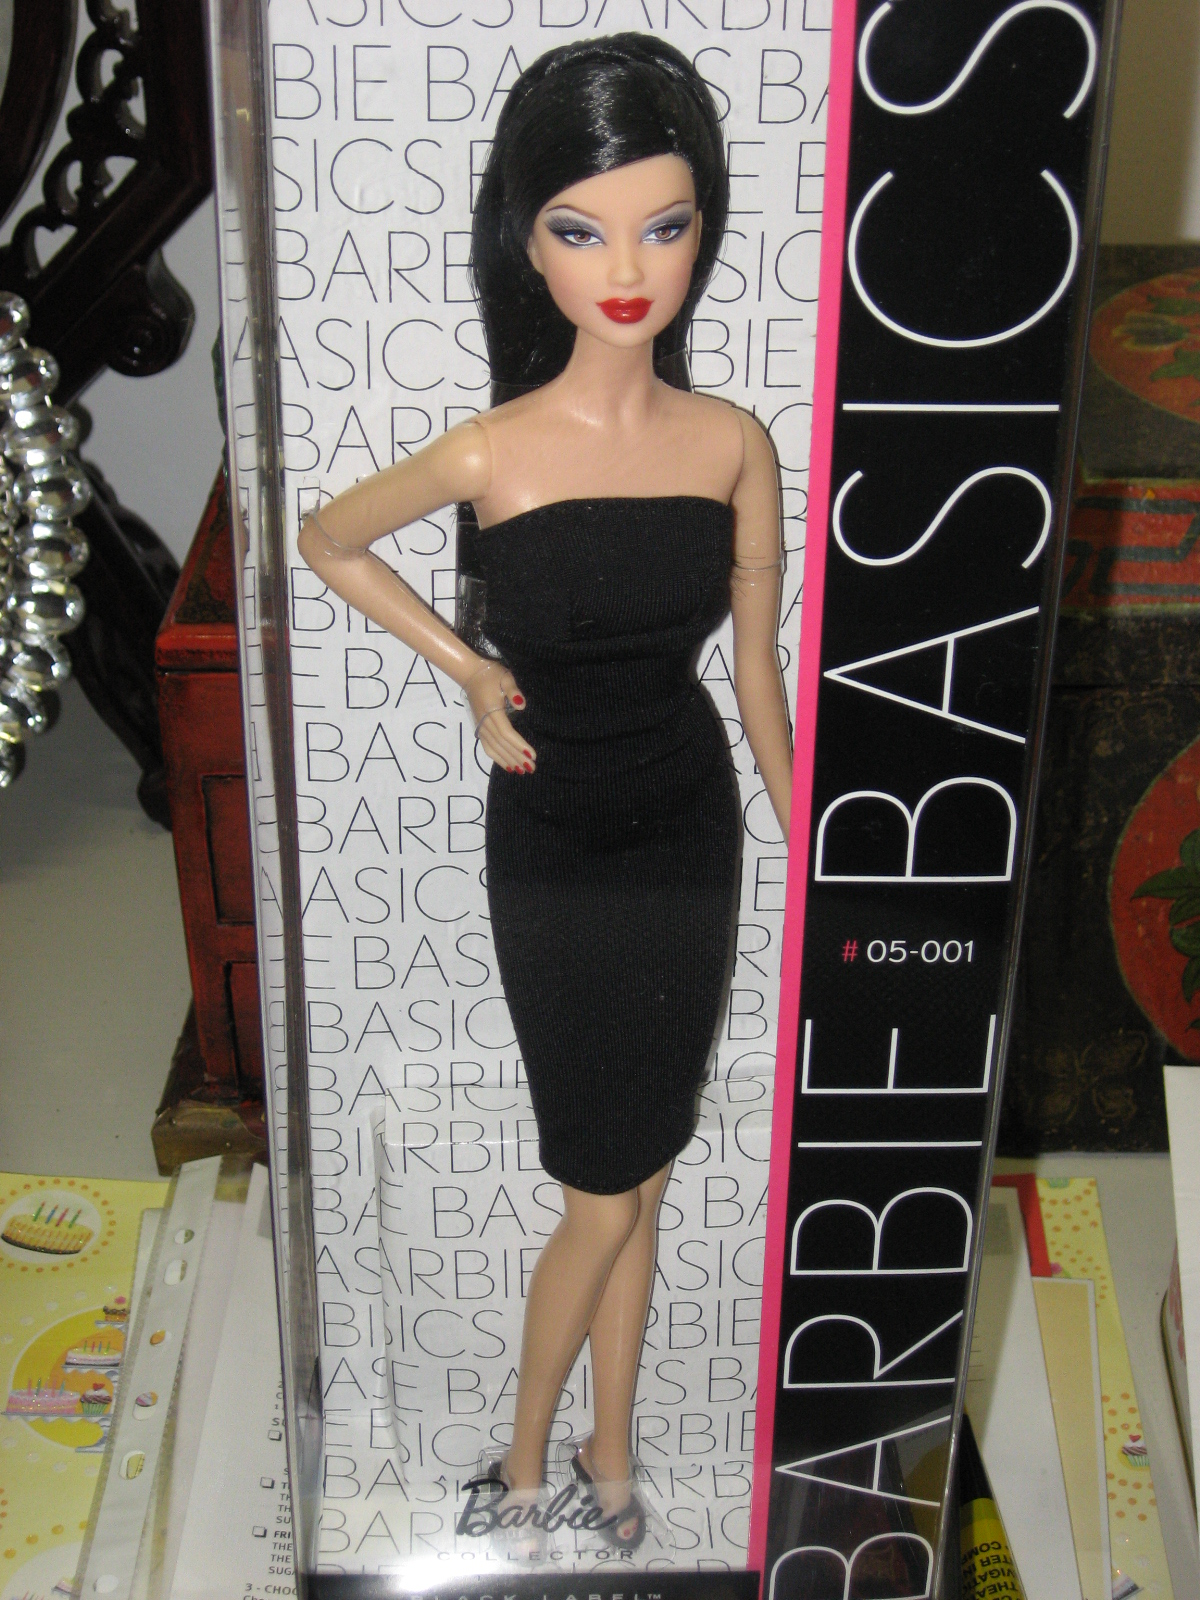 I Wasnt A Huge Fan Of The Basics Collection But Mattel Had So Kindly Modeled This Barbie After Me Couldnt Resist Buying Her